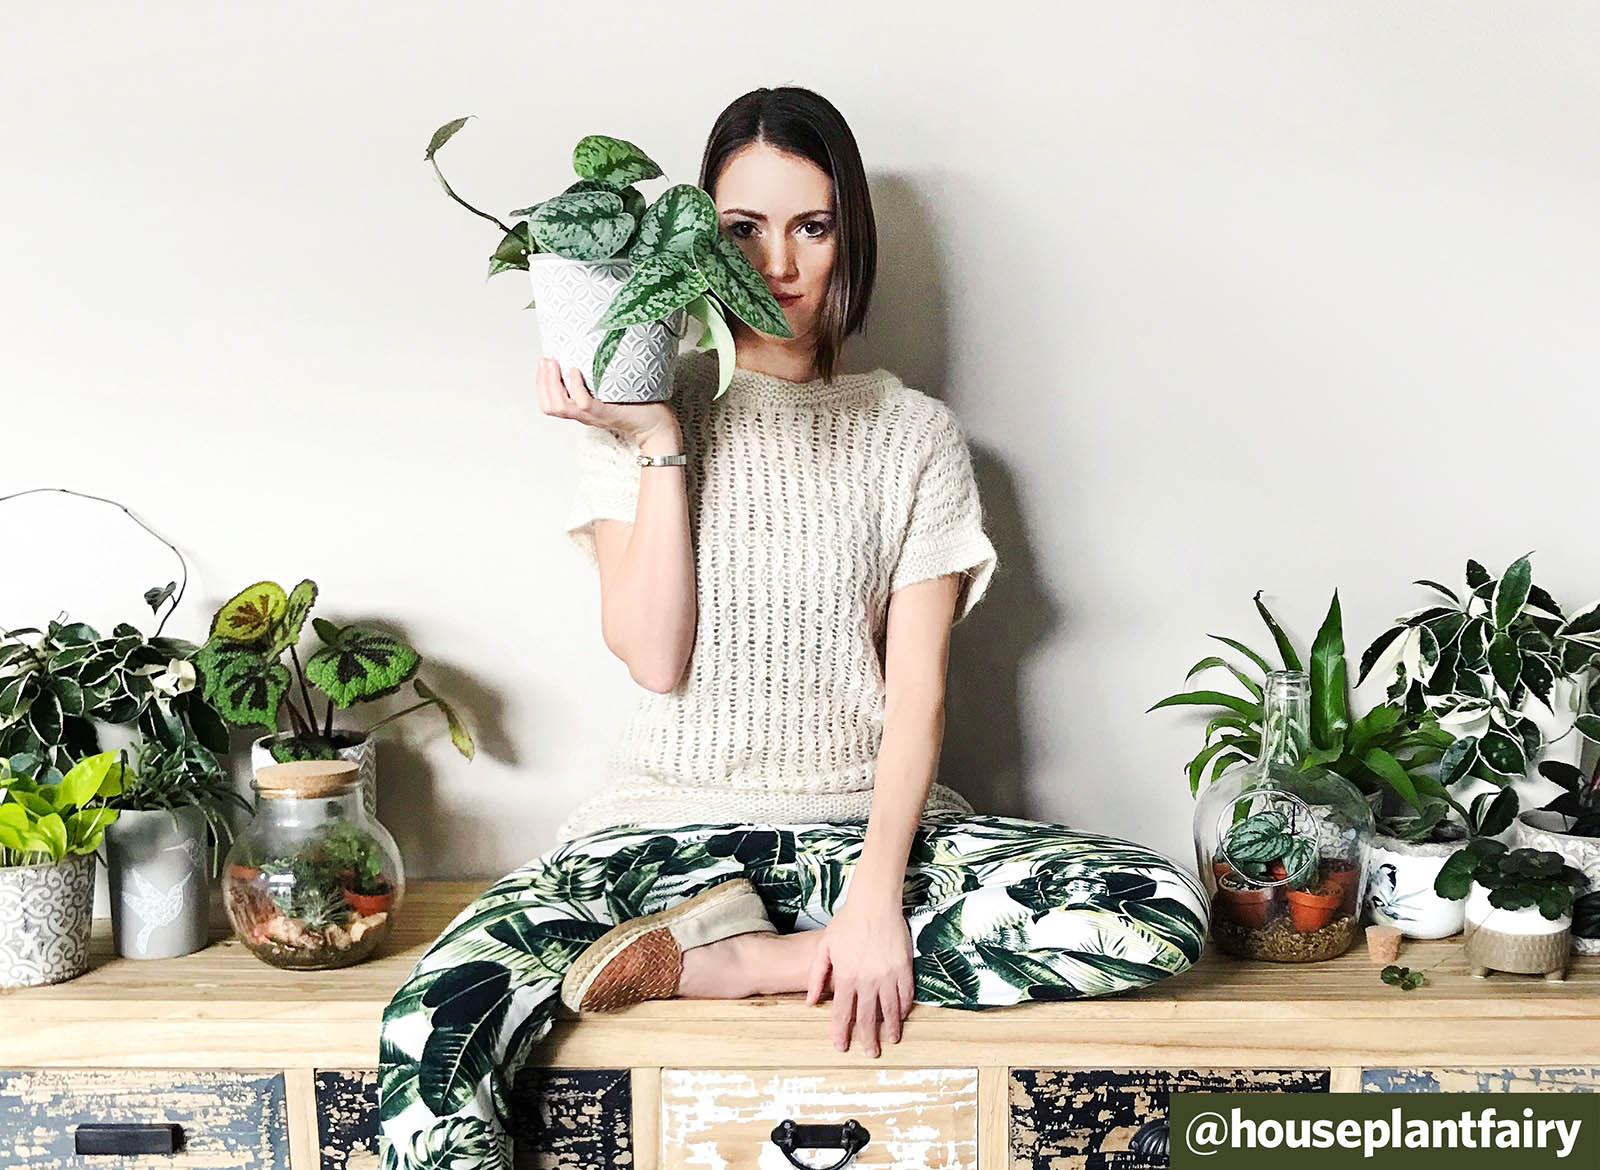 Q&A: Plant Love in Austria with @houseplantfairy